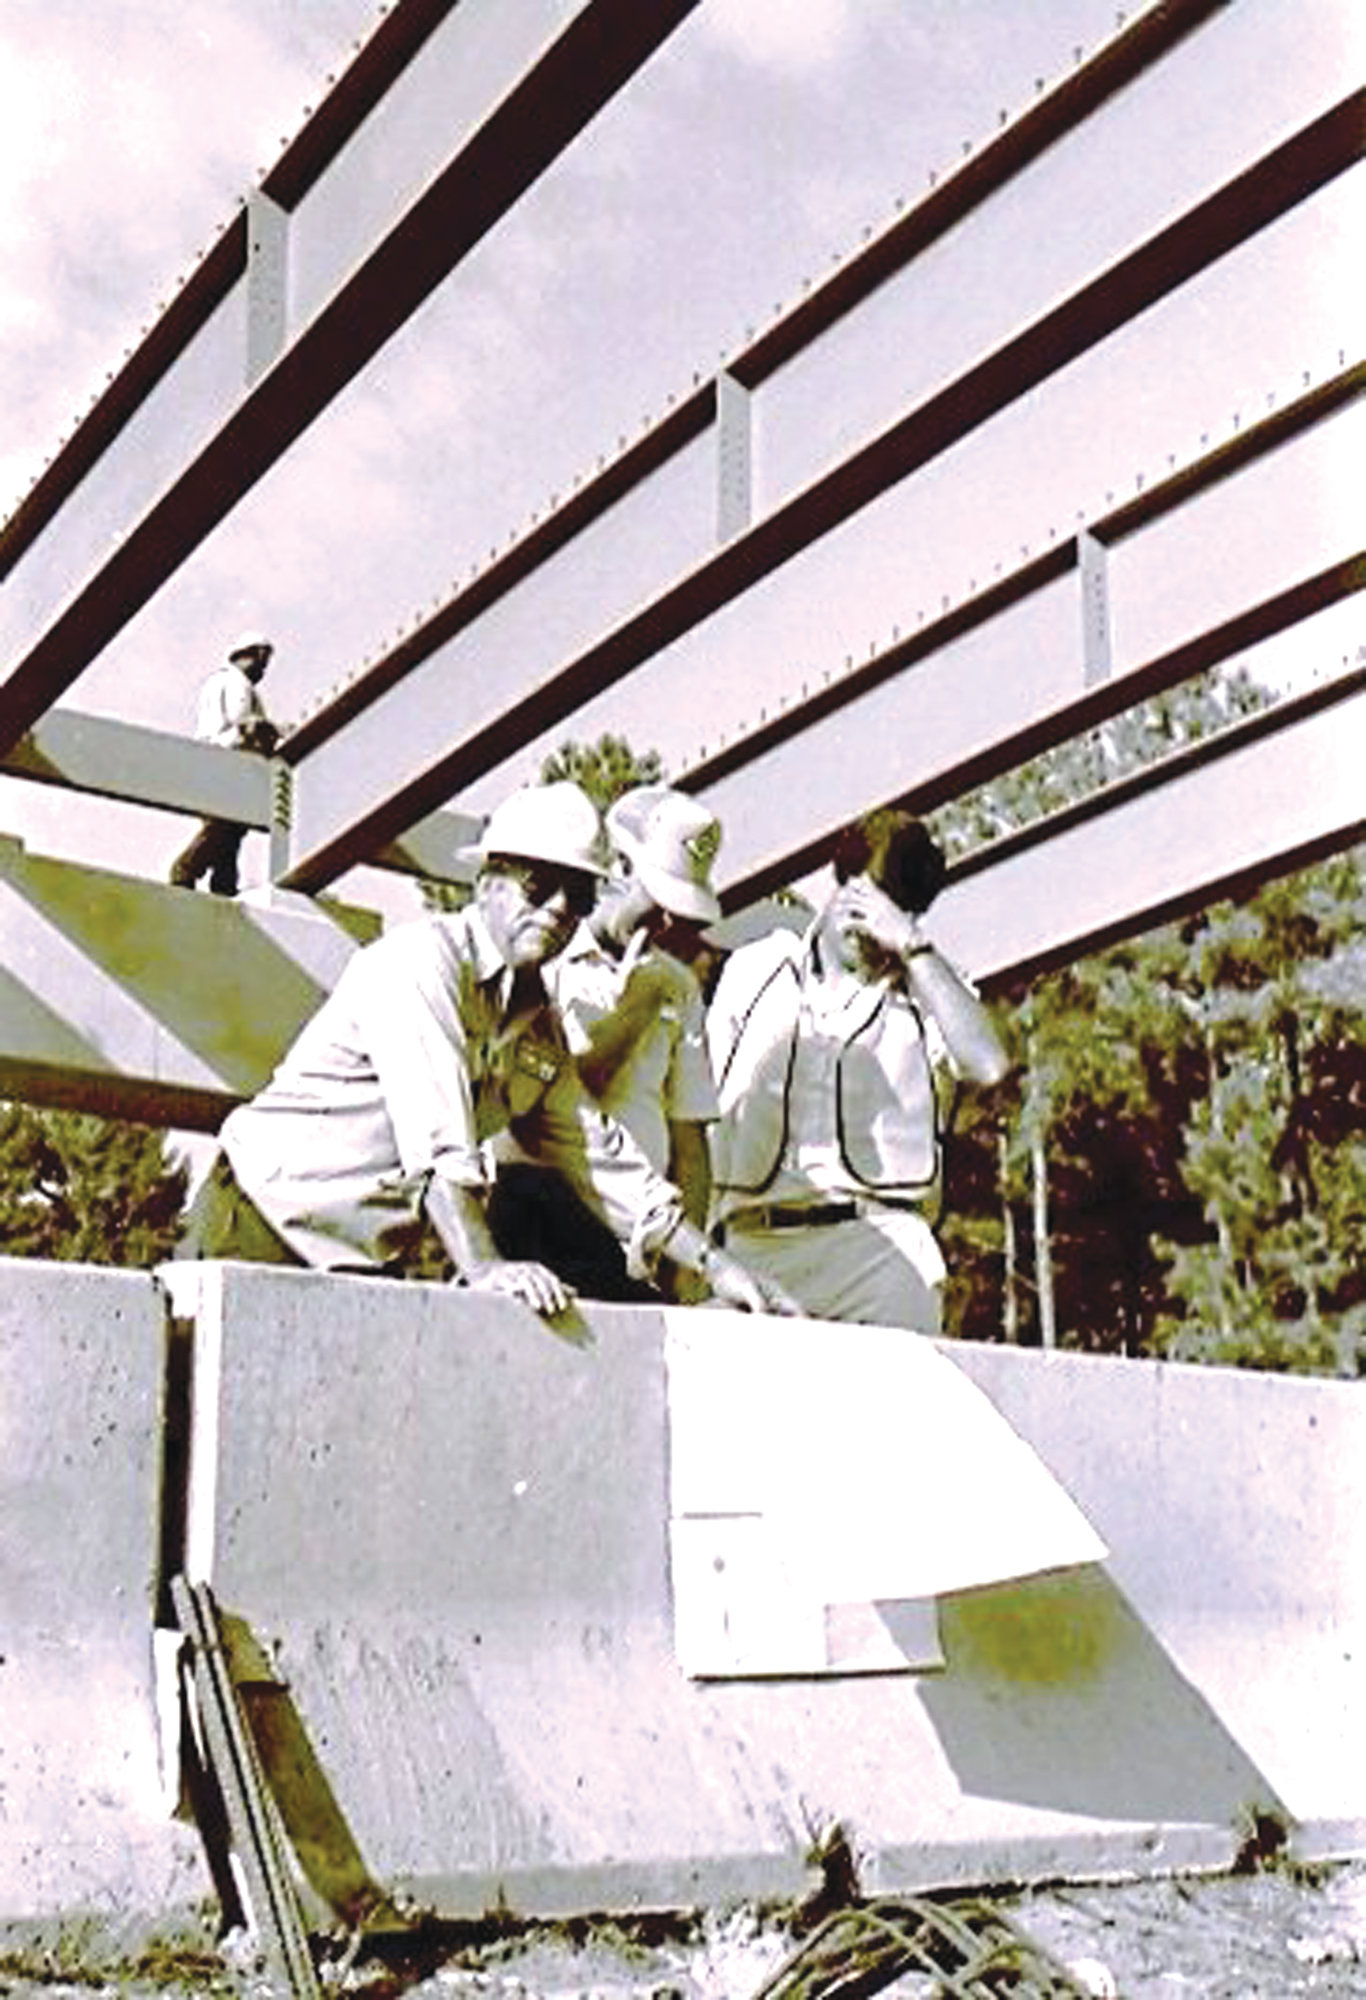 The Wise Drive bridge construction is seen in 1989.